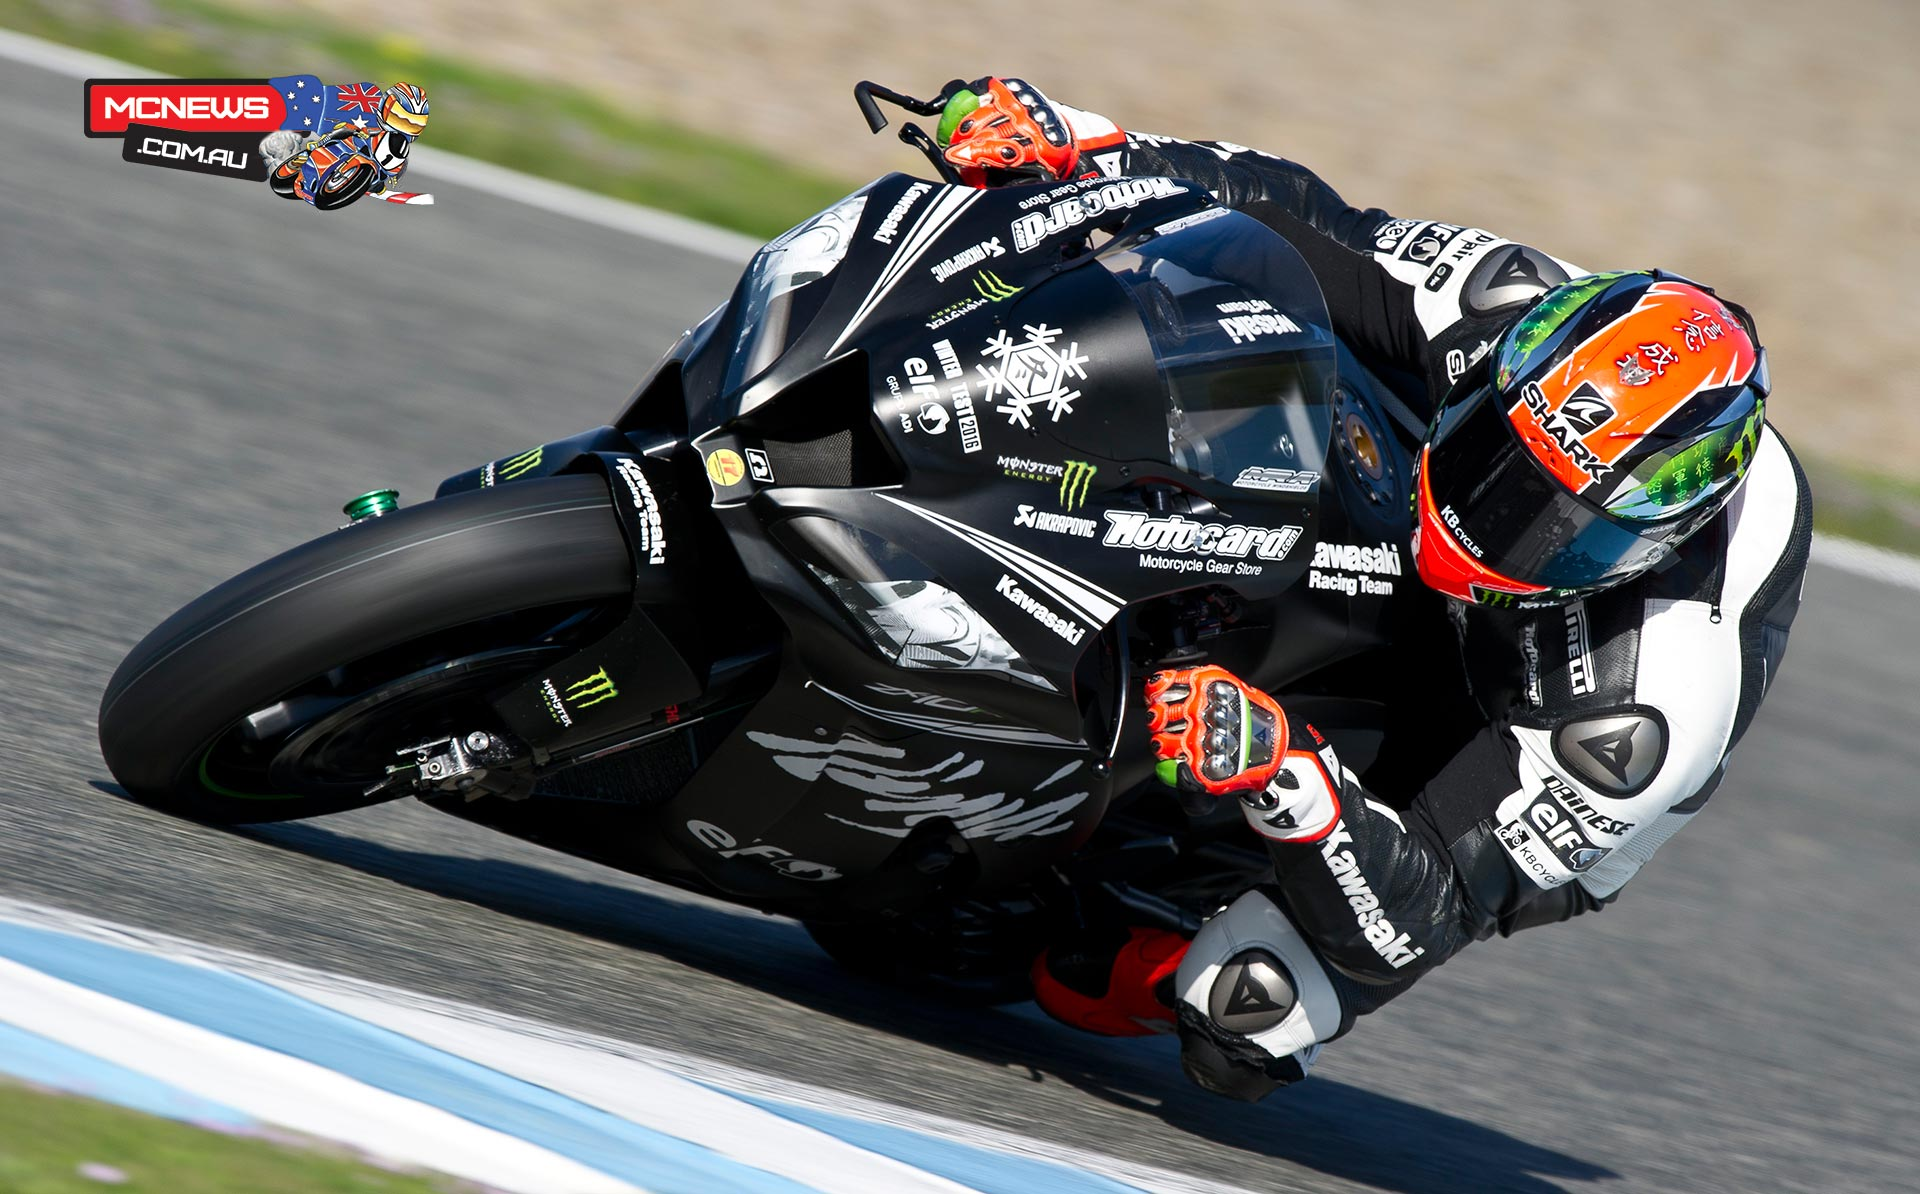 WorldSBK 2016 - Jerez Test Jan - Image by KRT - Tom Sykes